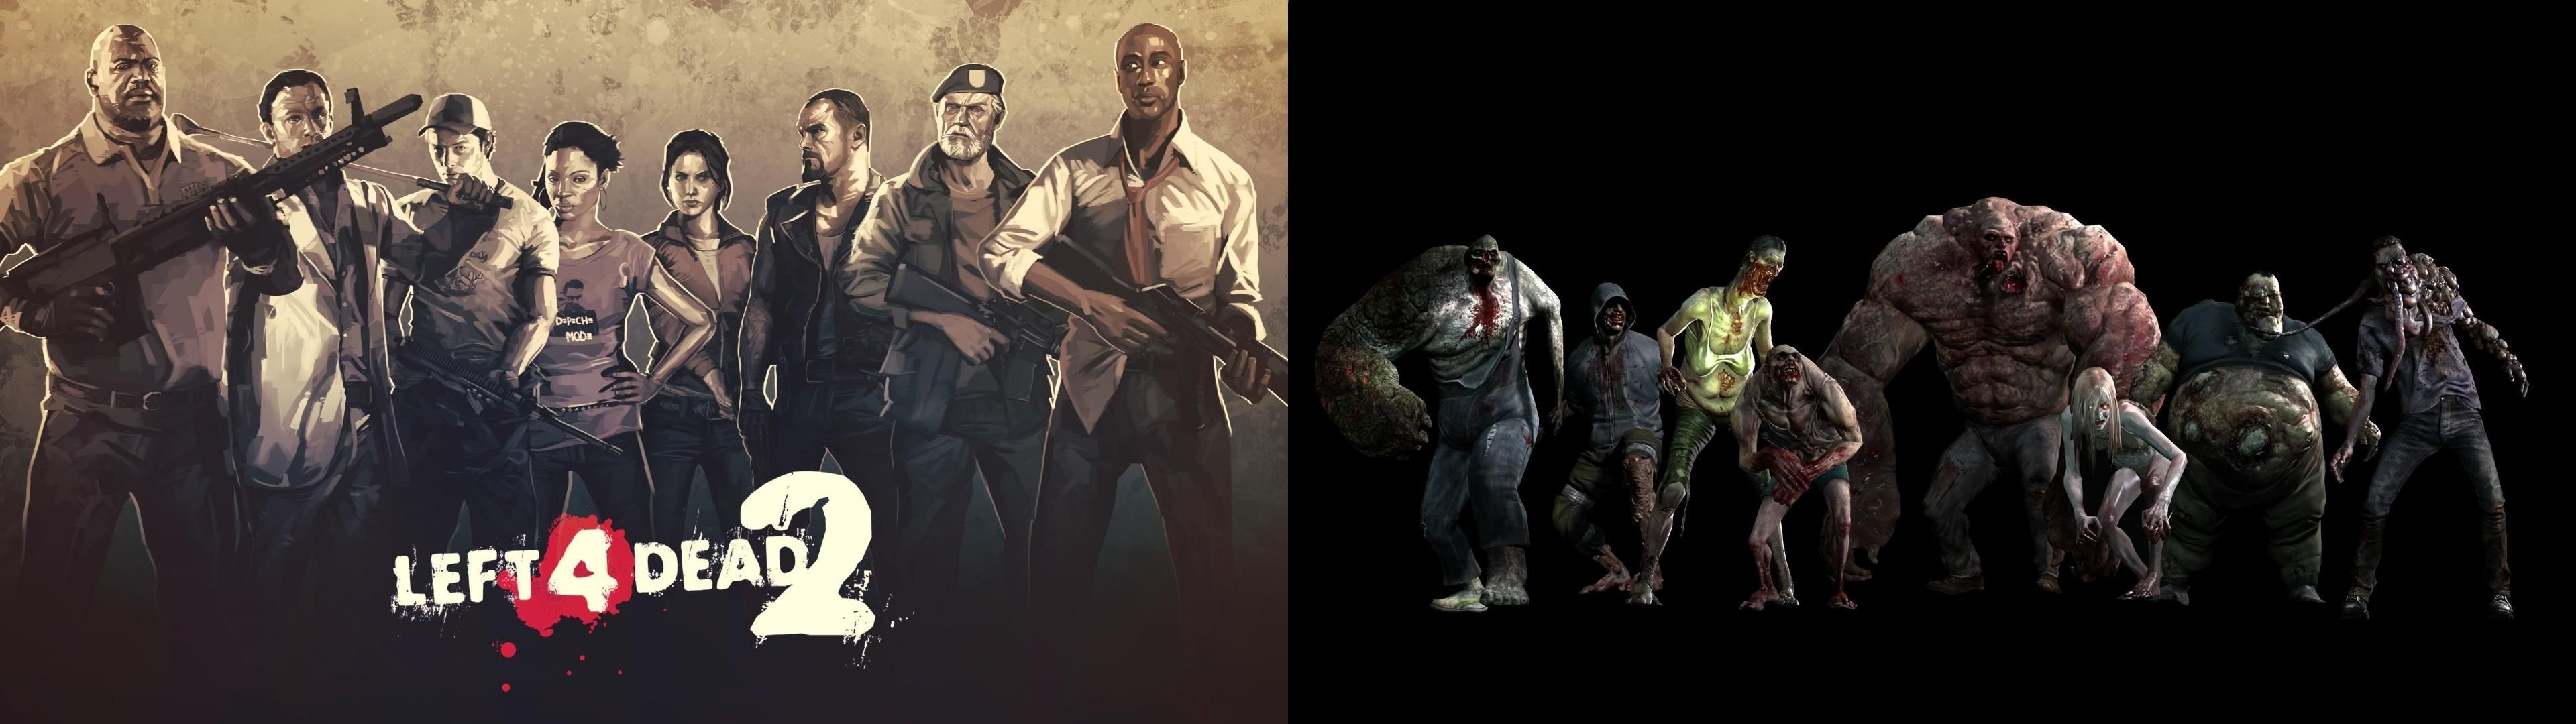 Res: 3840x1080, Left 4 Dead 2 Wallpapers, Left 4 Dead 2 Backgrounds for PC 100